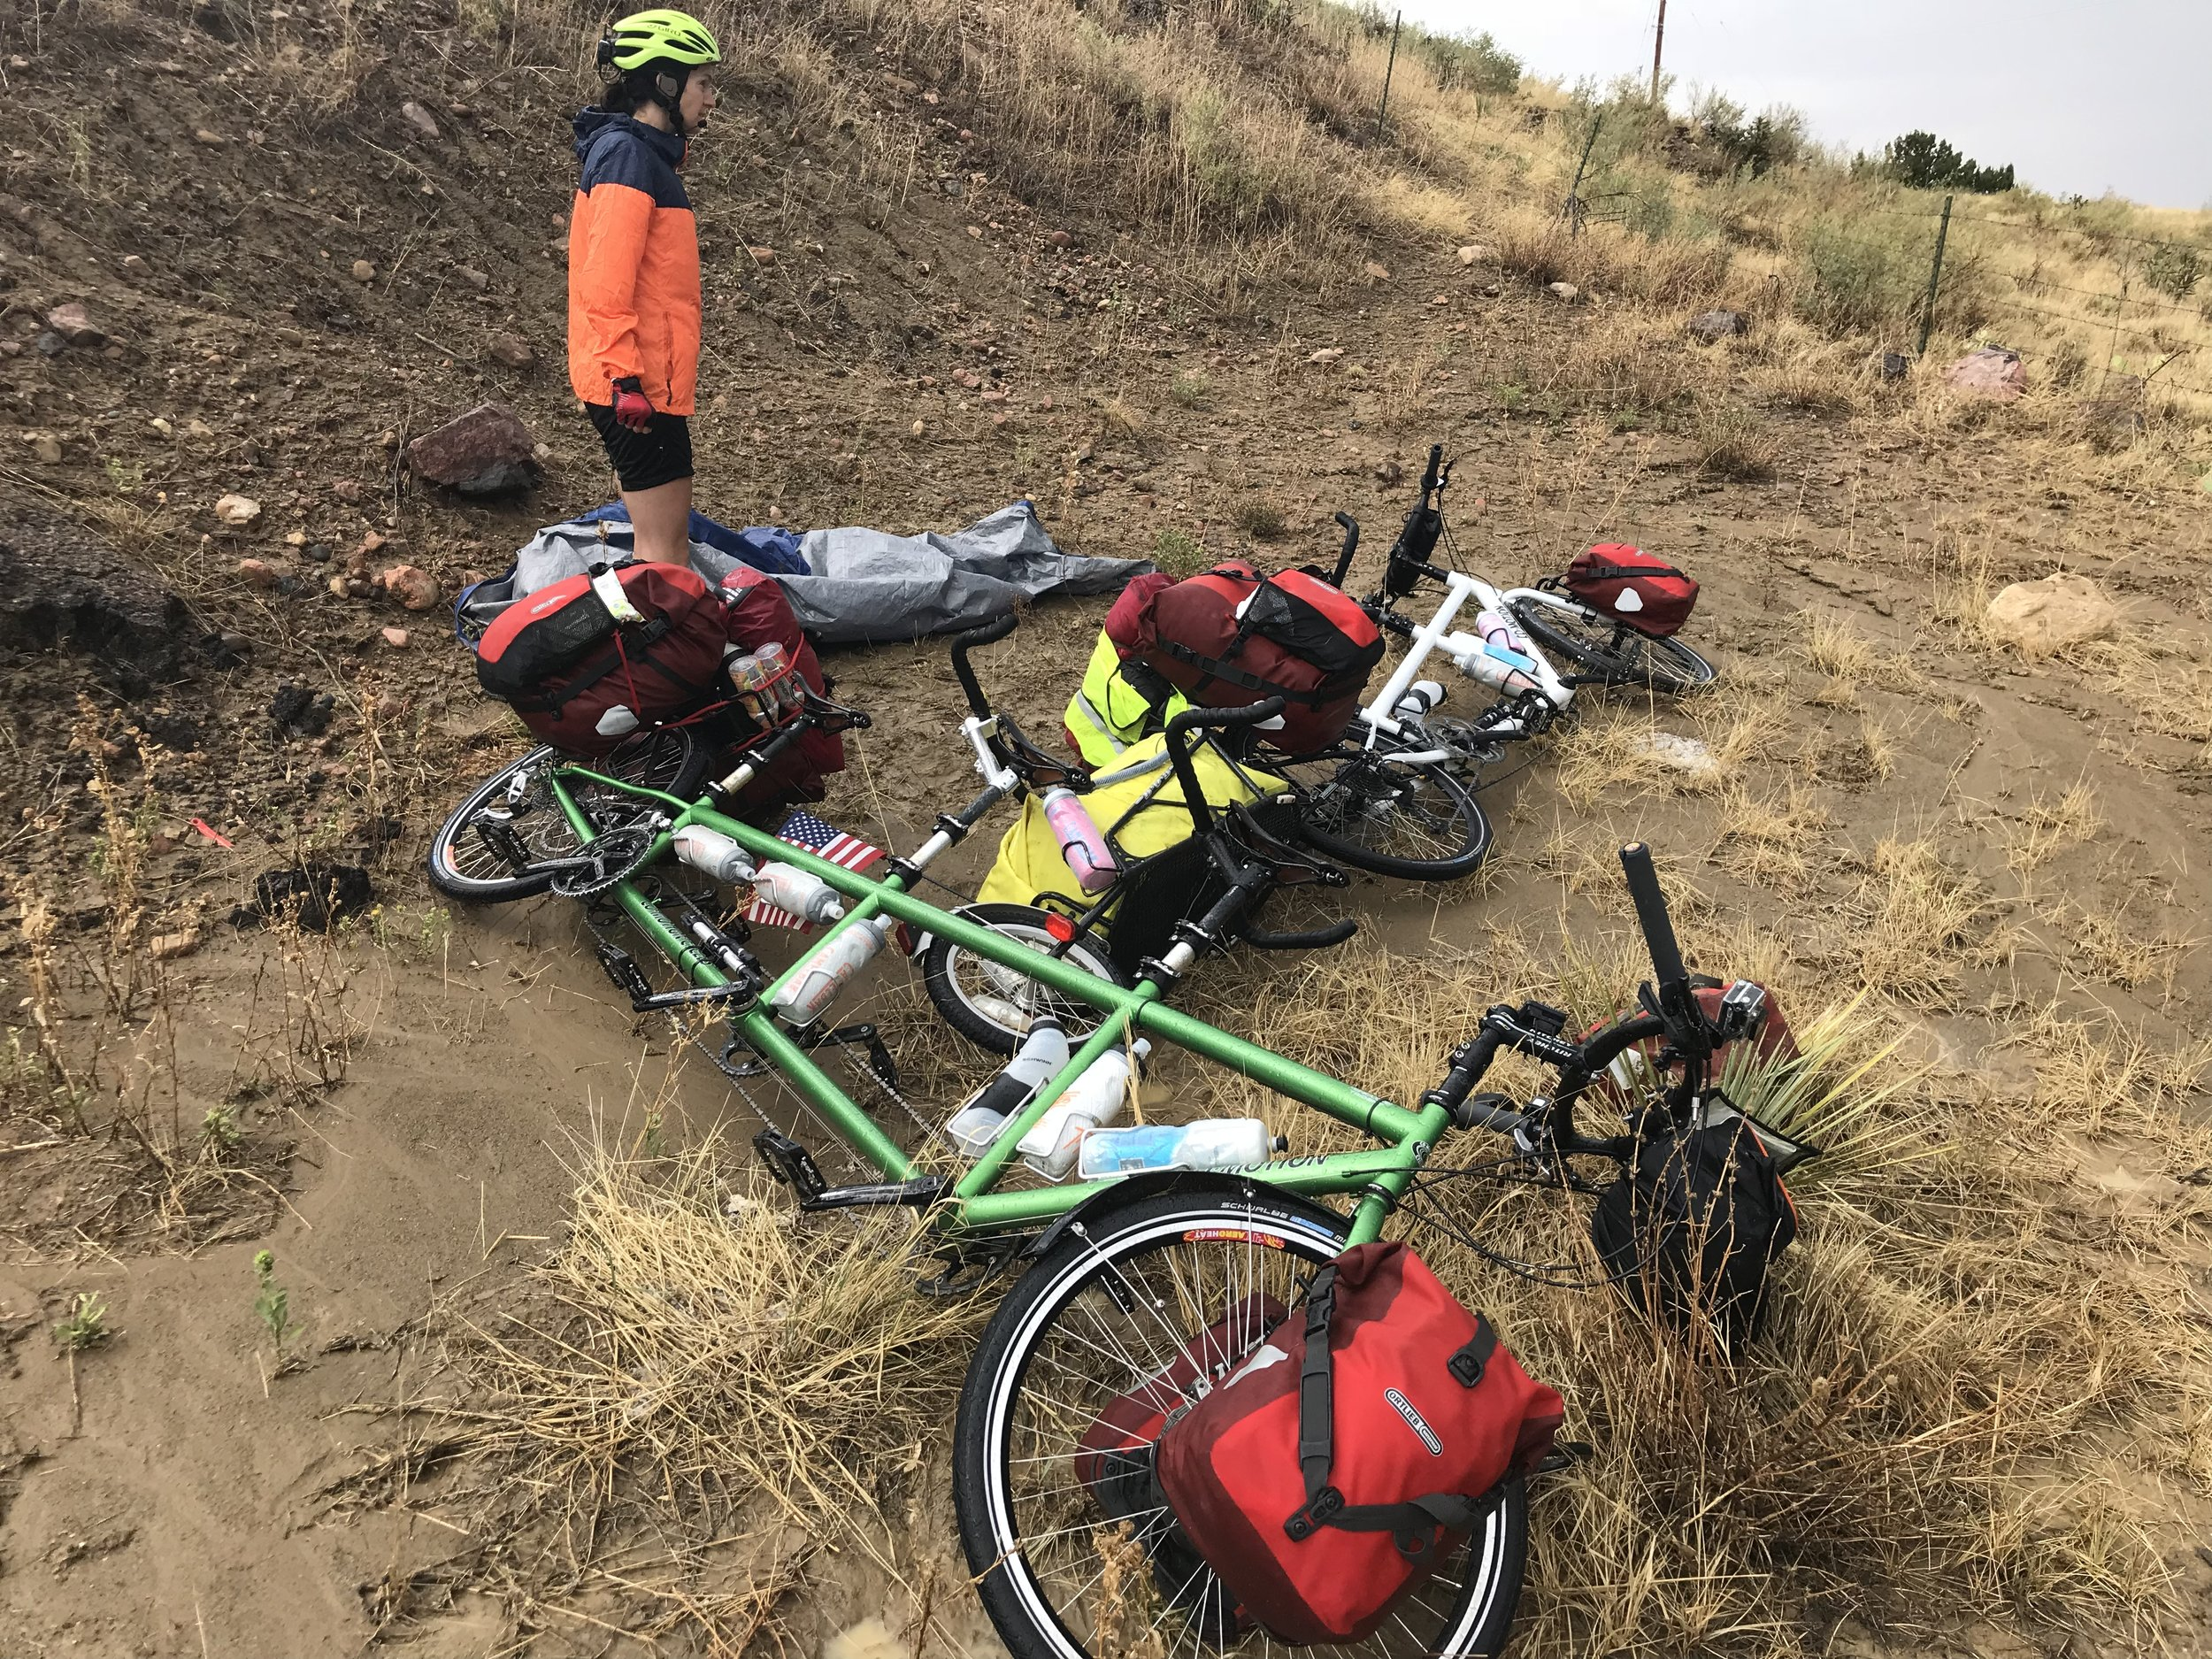 Here are our bikes and tarp in a sloppy, muddy mess after the storm had passed. The bikes were caked in mud even more after we rolled them out of this area back onto the road.